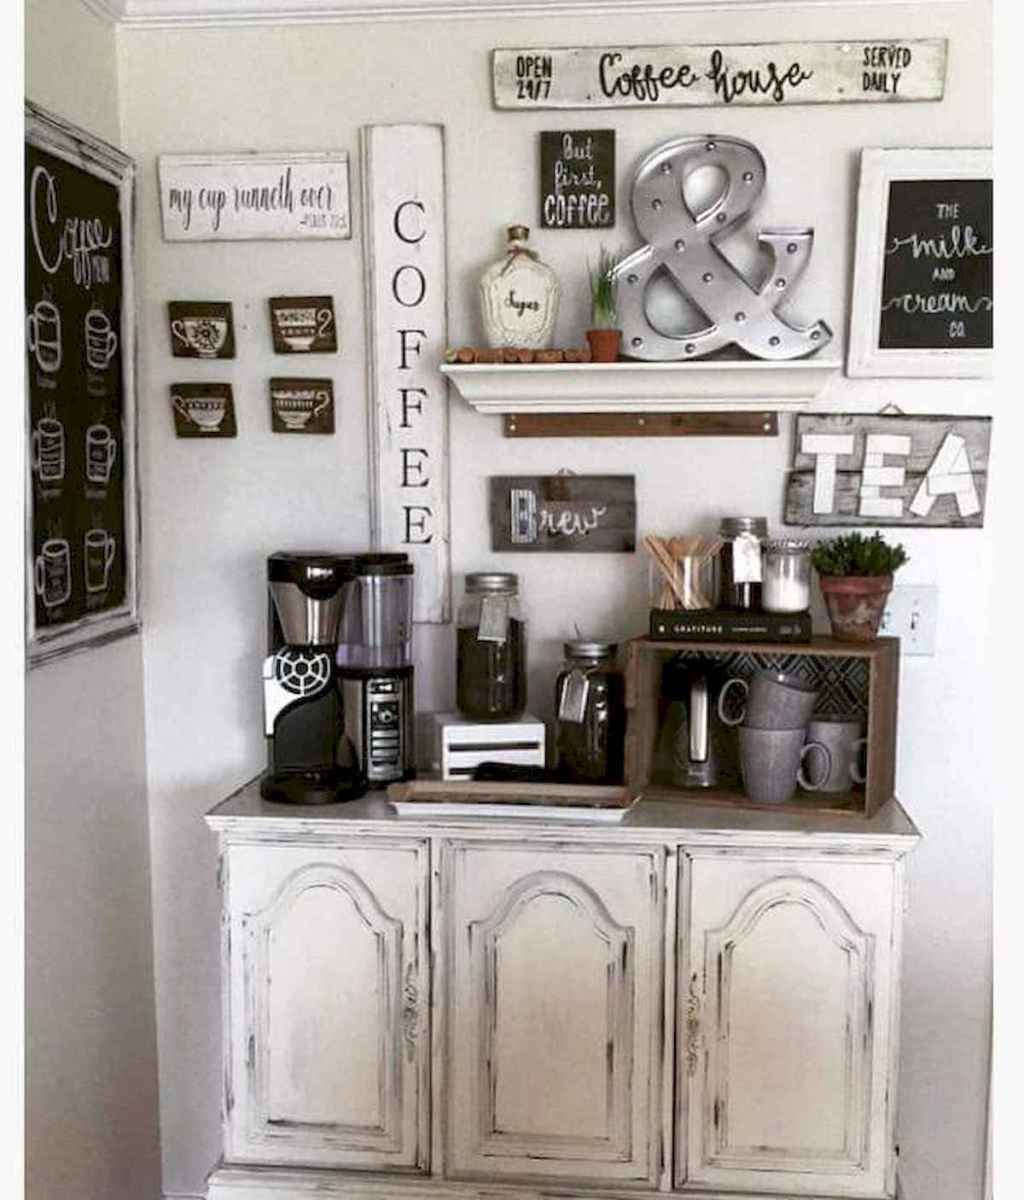 32 Awesome DIY Mini Coffee Bar Design Ideas For Your Home (4 ... on brown kitchen cabinets ideas, kitchen lounge ideas, kitchen garden ideas, kitchen cafe ideas, kitchen breakfast bar ideas, coffee house decor ideas, building your own bar ideas, kitchen buffet ideas, kitchen gifts ideas, s'mores buffet ideas, small bar ideas, kitchen utensil drawer organizers, cocoa bar ideas, home coffee station ideas, kitchen wine ideas, kitchen alcohol bar ideas, s'more dessert ideas, kitchen library ideas, bar top kitchen ideas, kitchen bistro ideas,